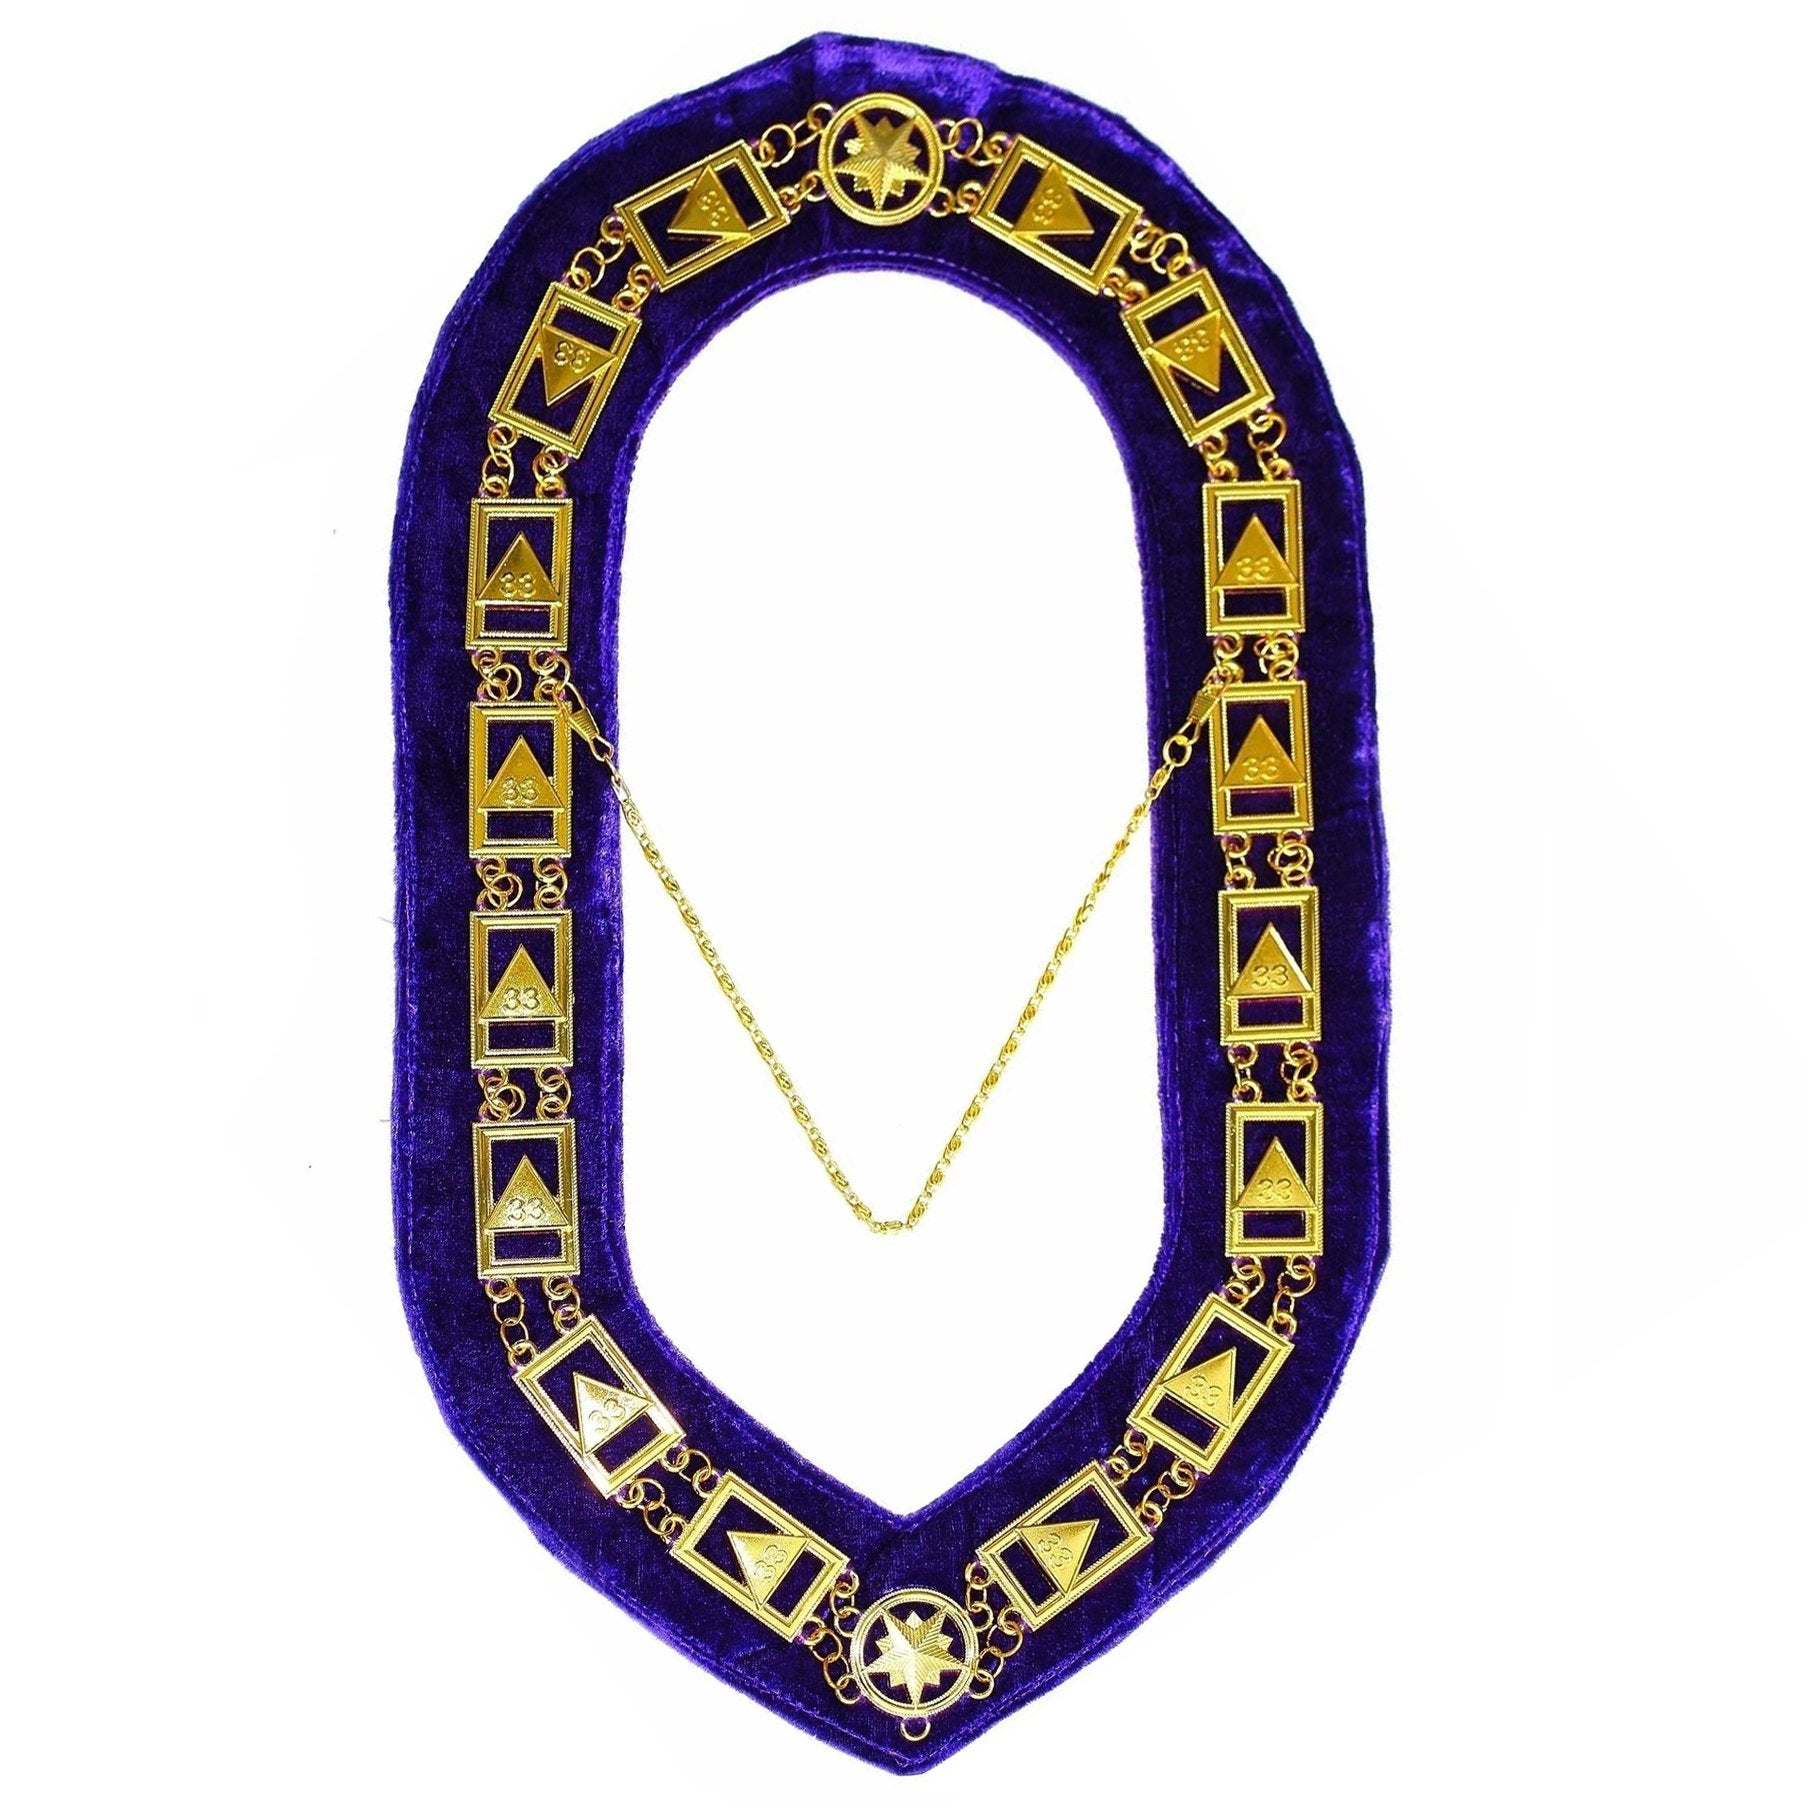 33rd Degree - Scottish Rite Chain Collar - Gold/Silver on Purple + Free Case - Bricks Masons